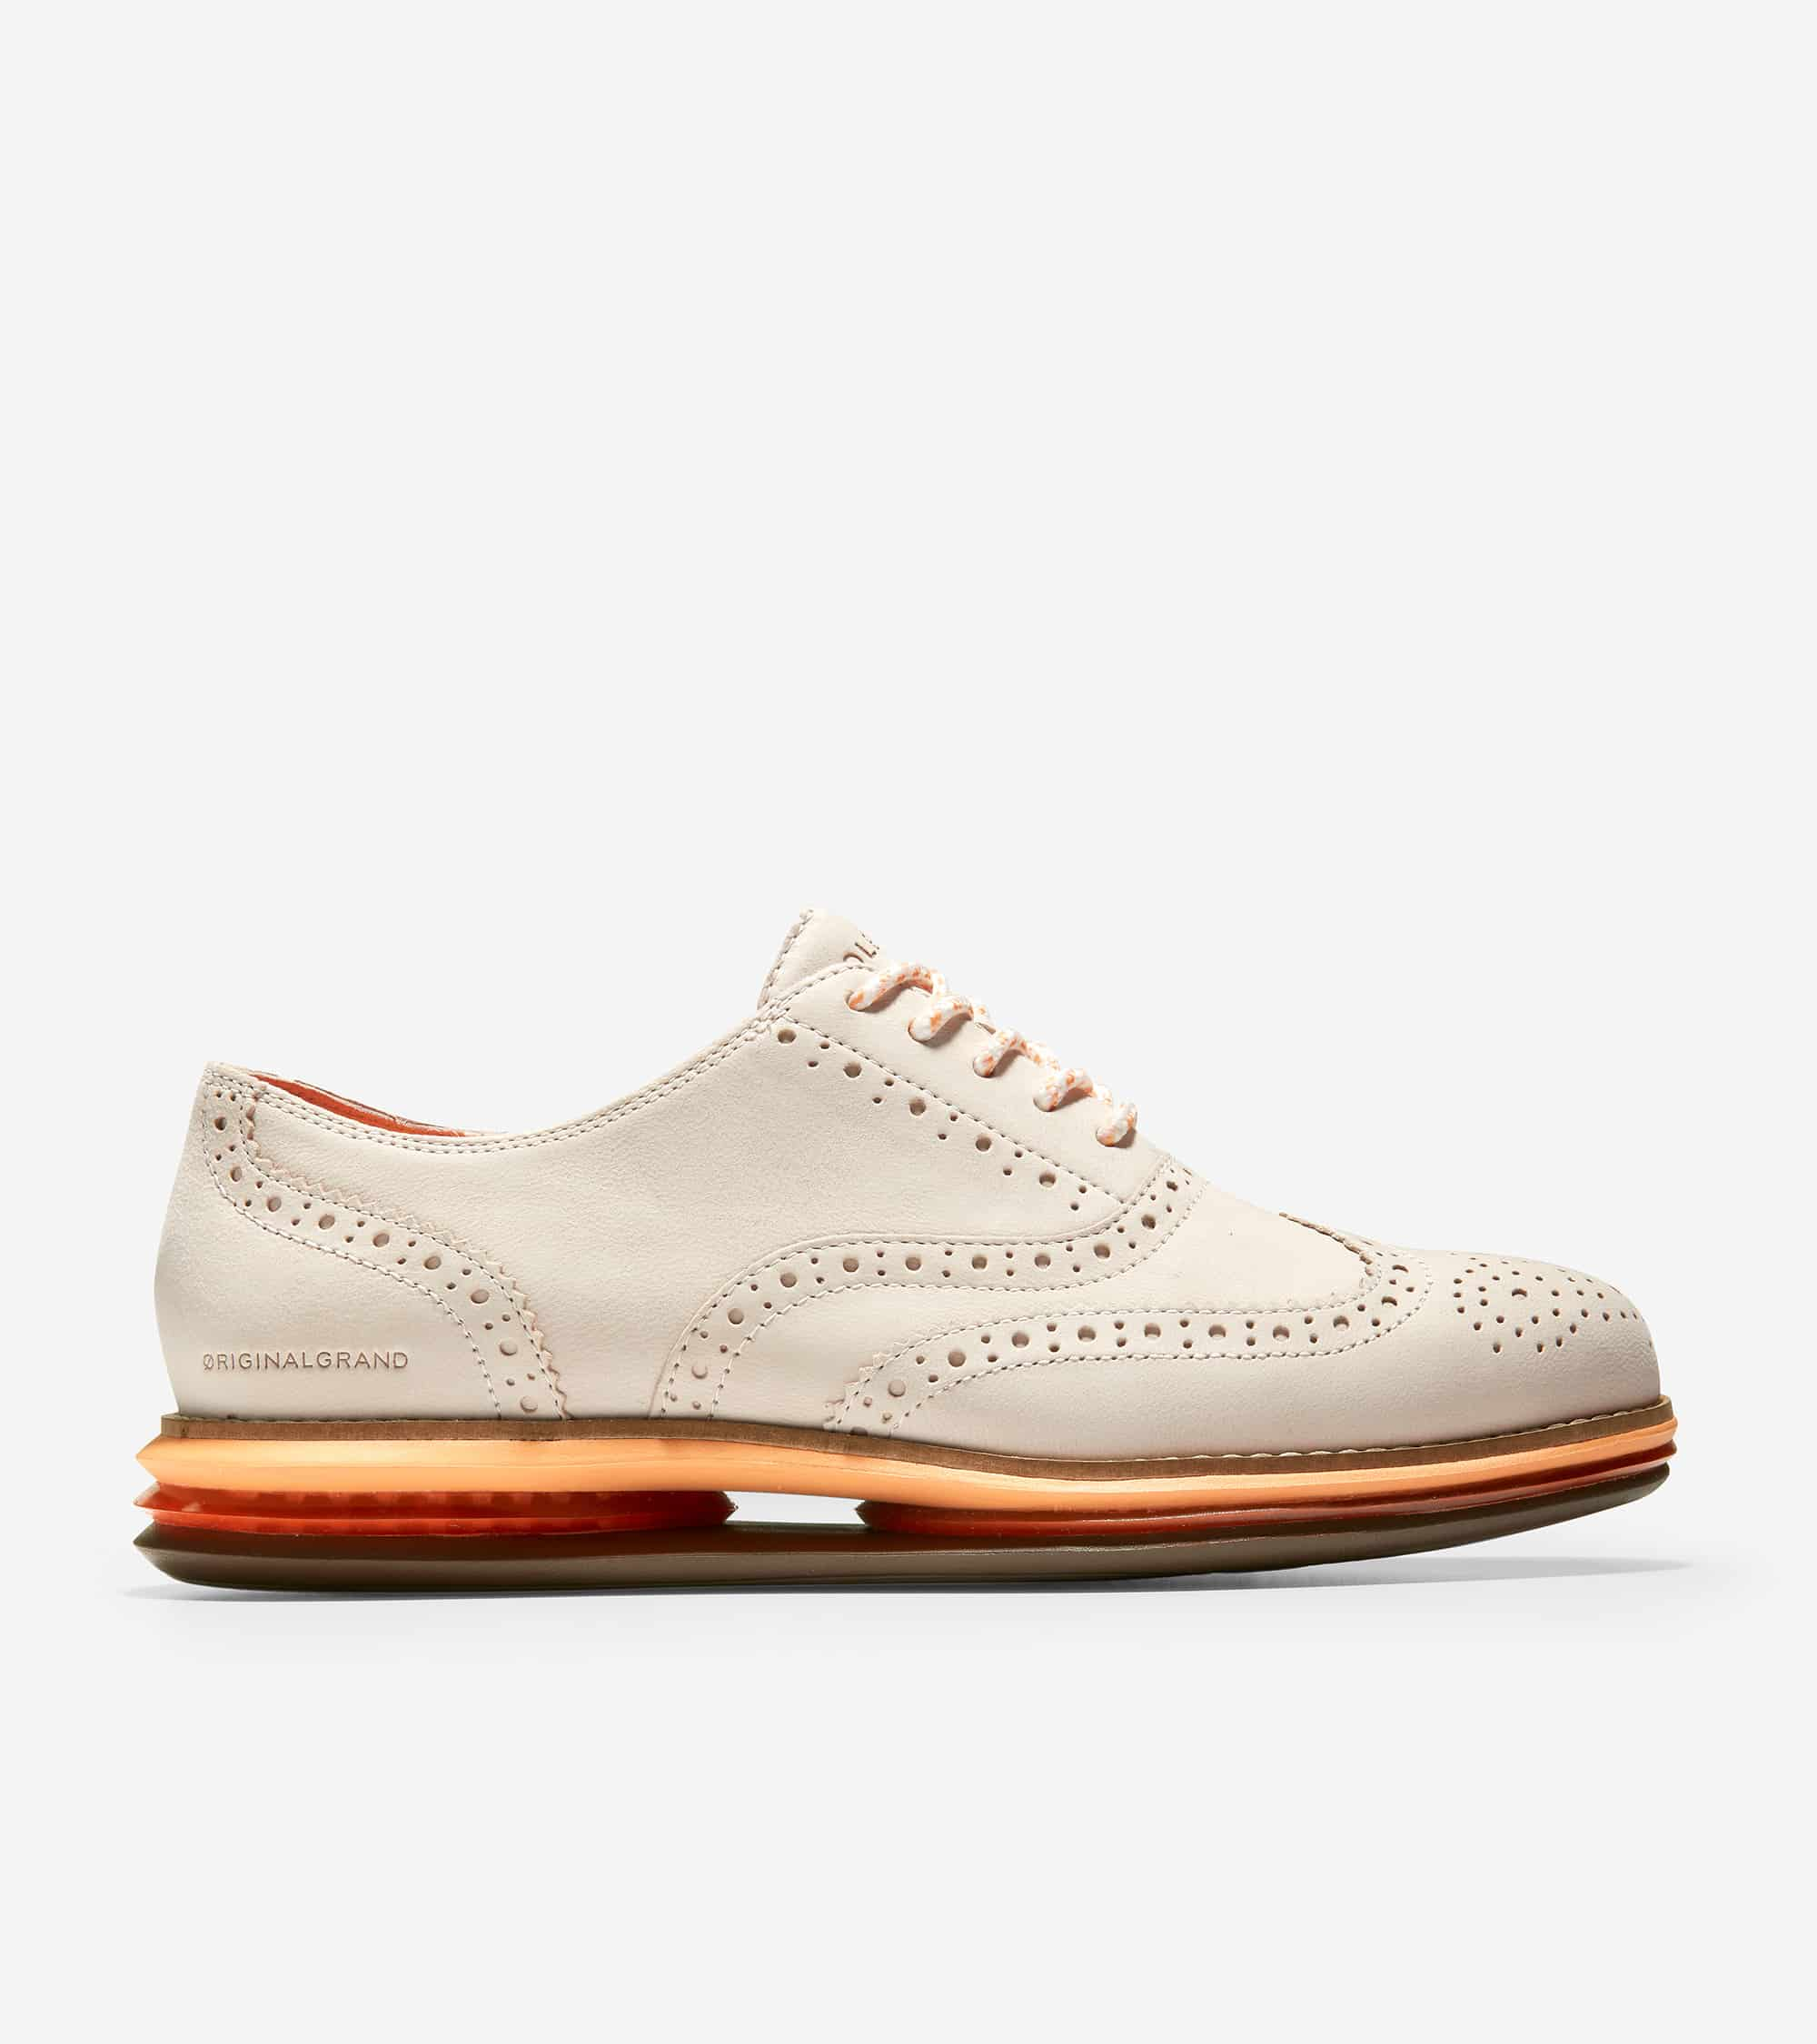 Cole Haan Øriginalgrand Cloudfeel Energy Twin Oxford Ivory Nubuck/ Pumpkin/ Vibrant Orange Gel/ Ch Umbria